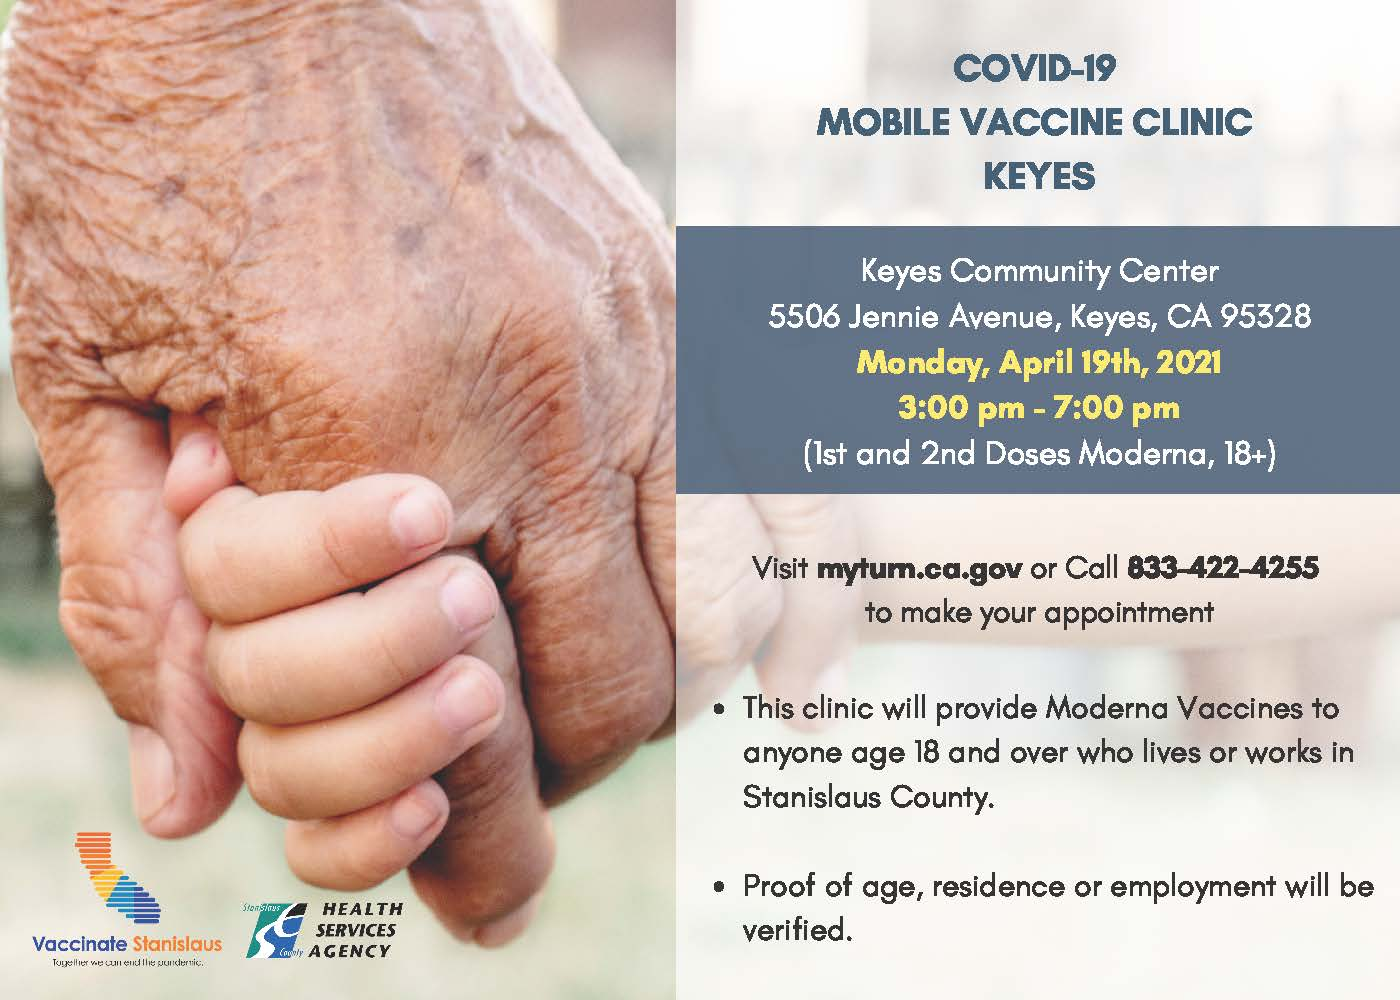 Mobile Vaccine Clinic 5X7 Flier (Keyes)